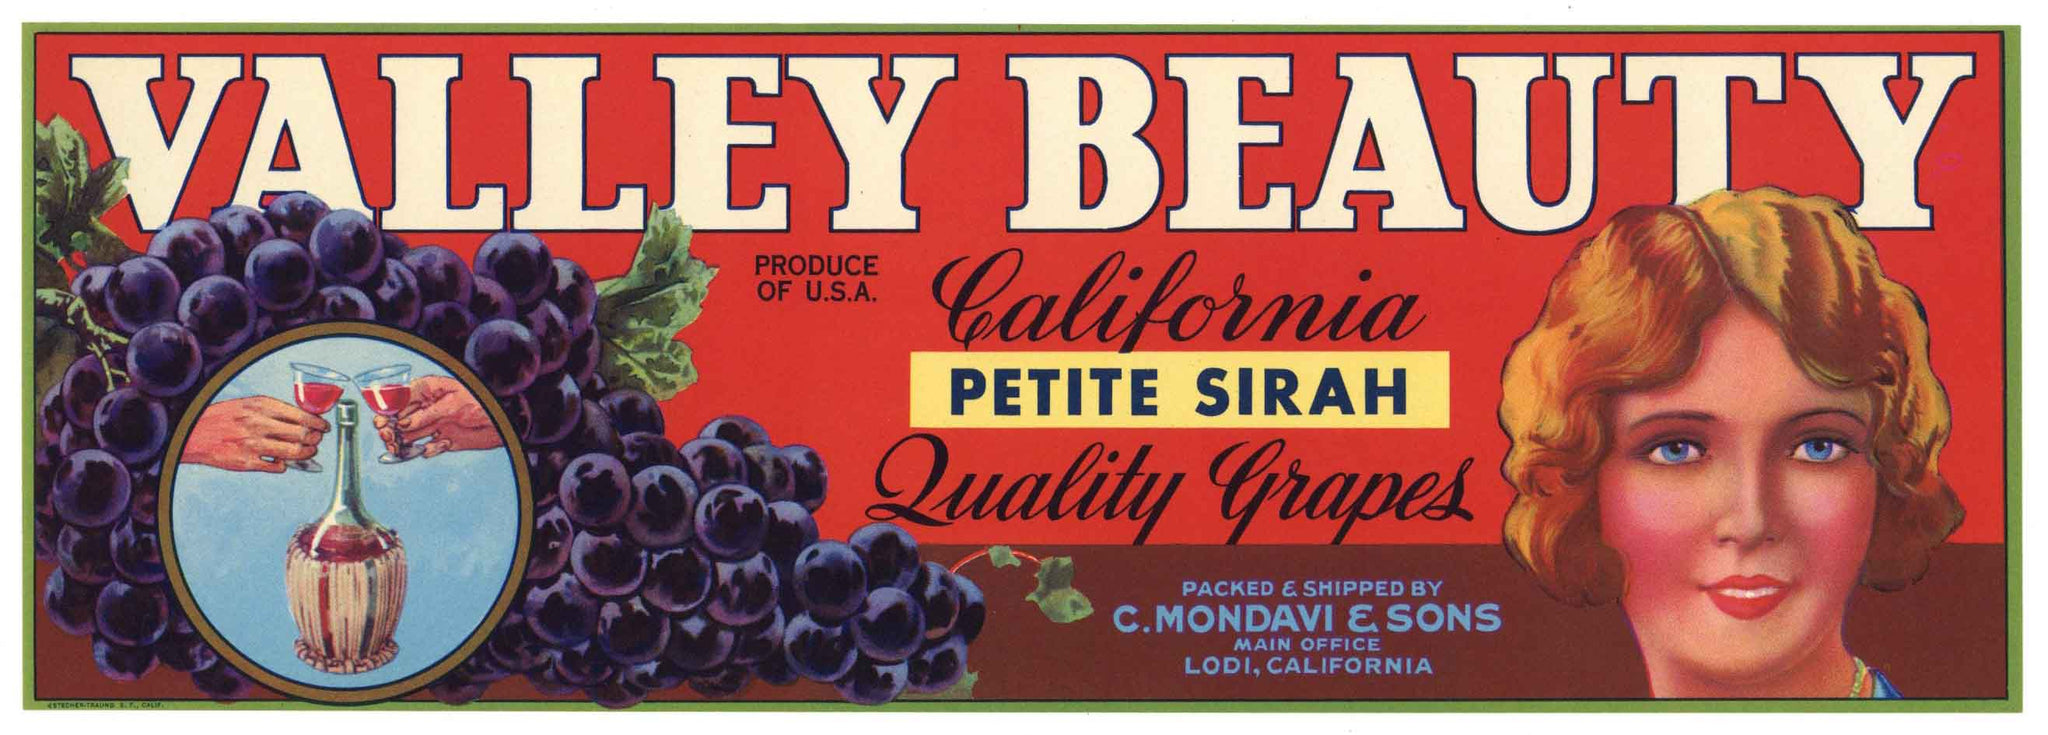 Valley Beauty Brand Vintage C. Mondavi Petite Sirah Grape Crate Label